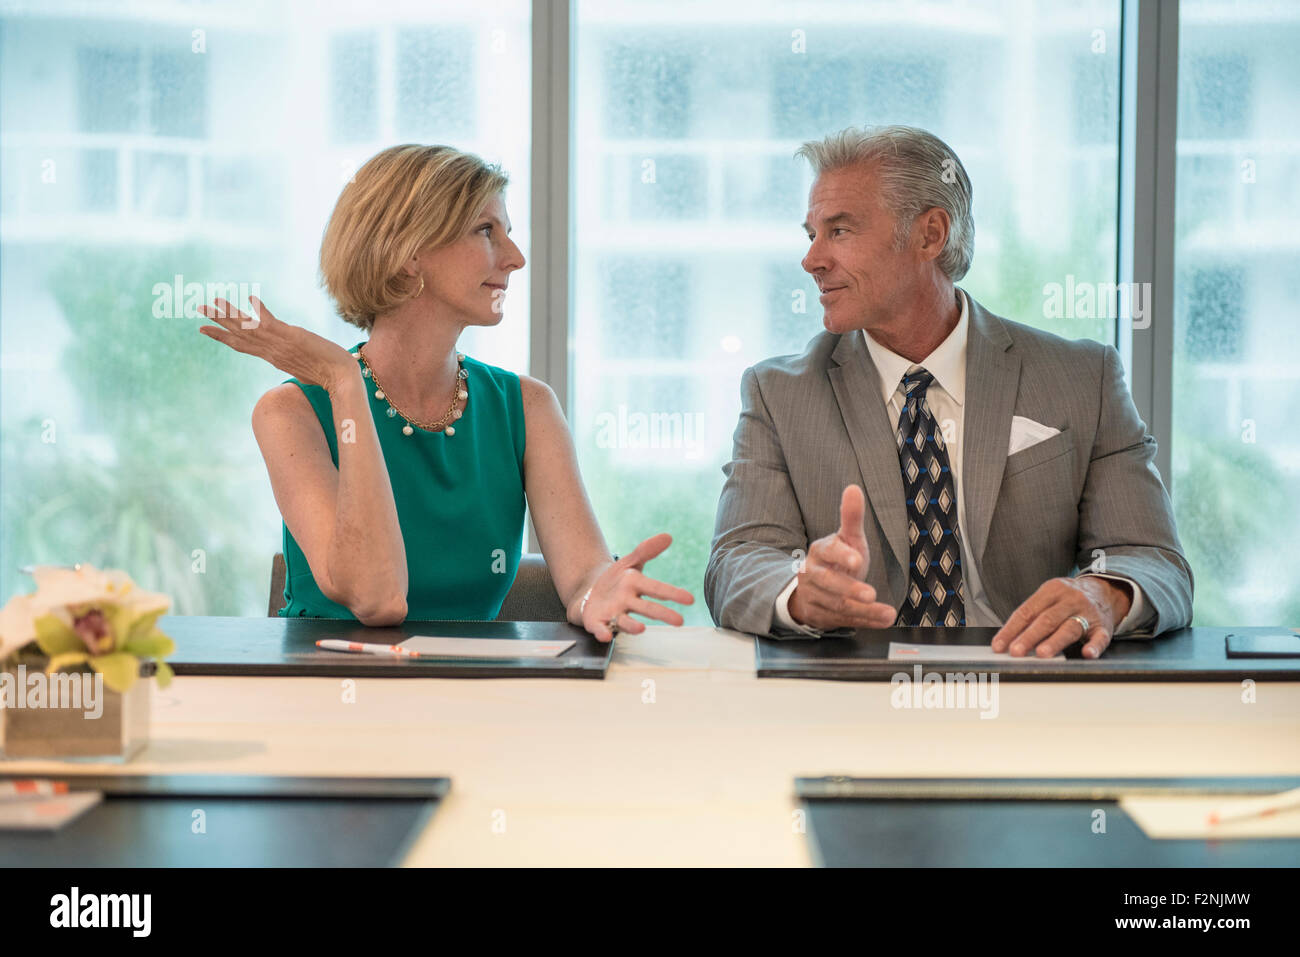 Caucasian business people talking in meeting Stock Photo